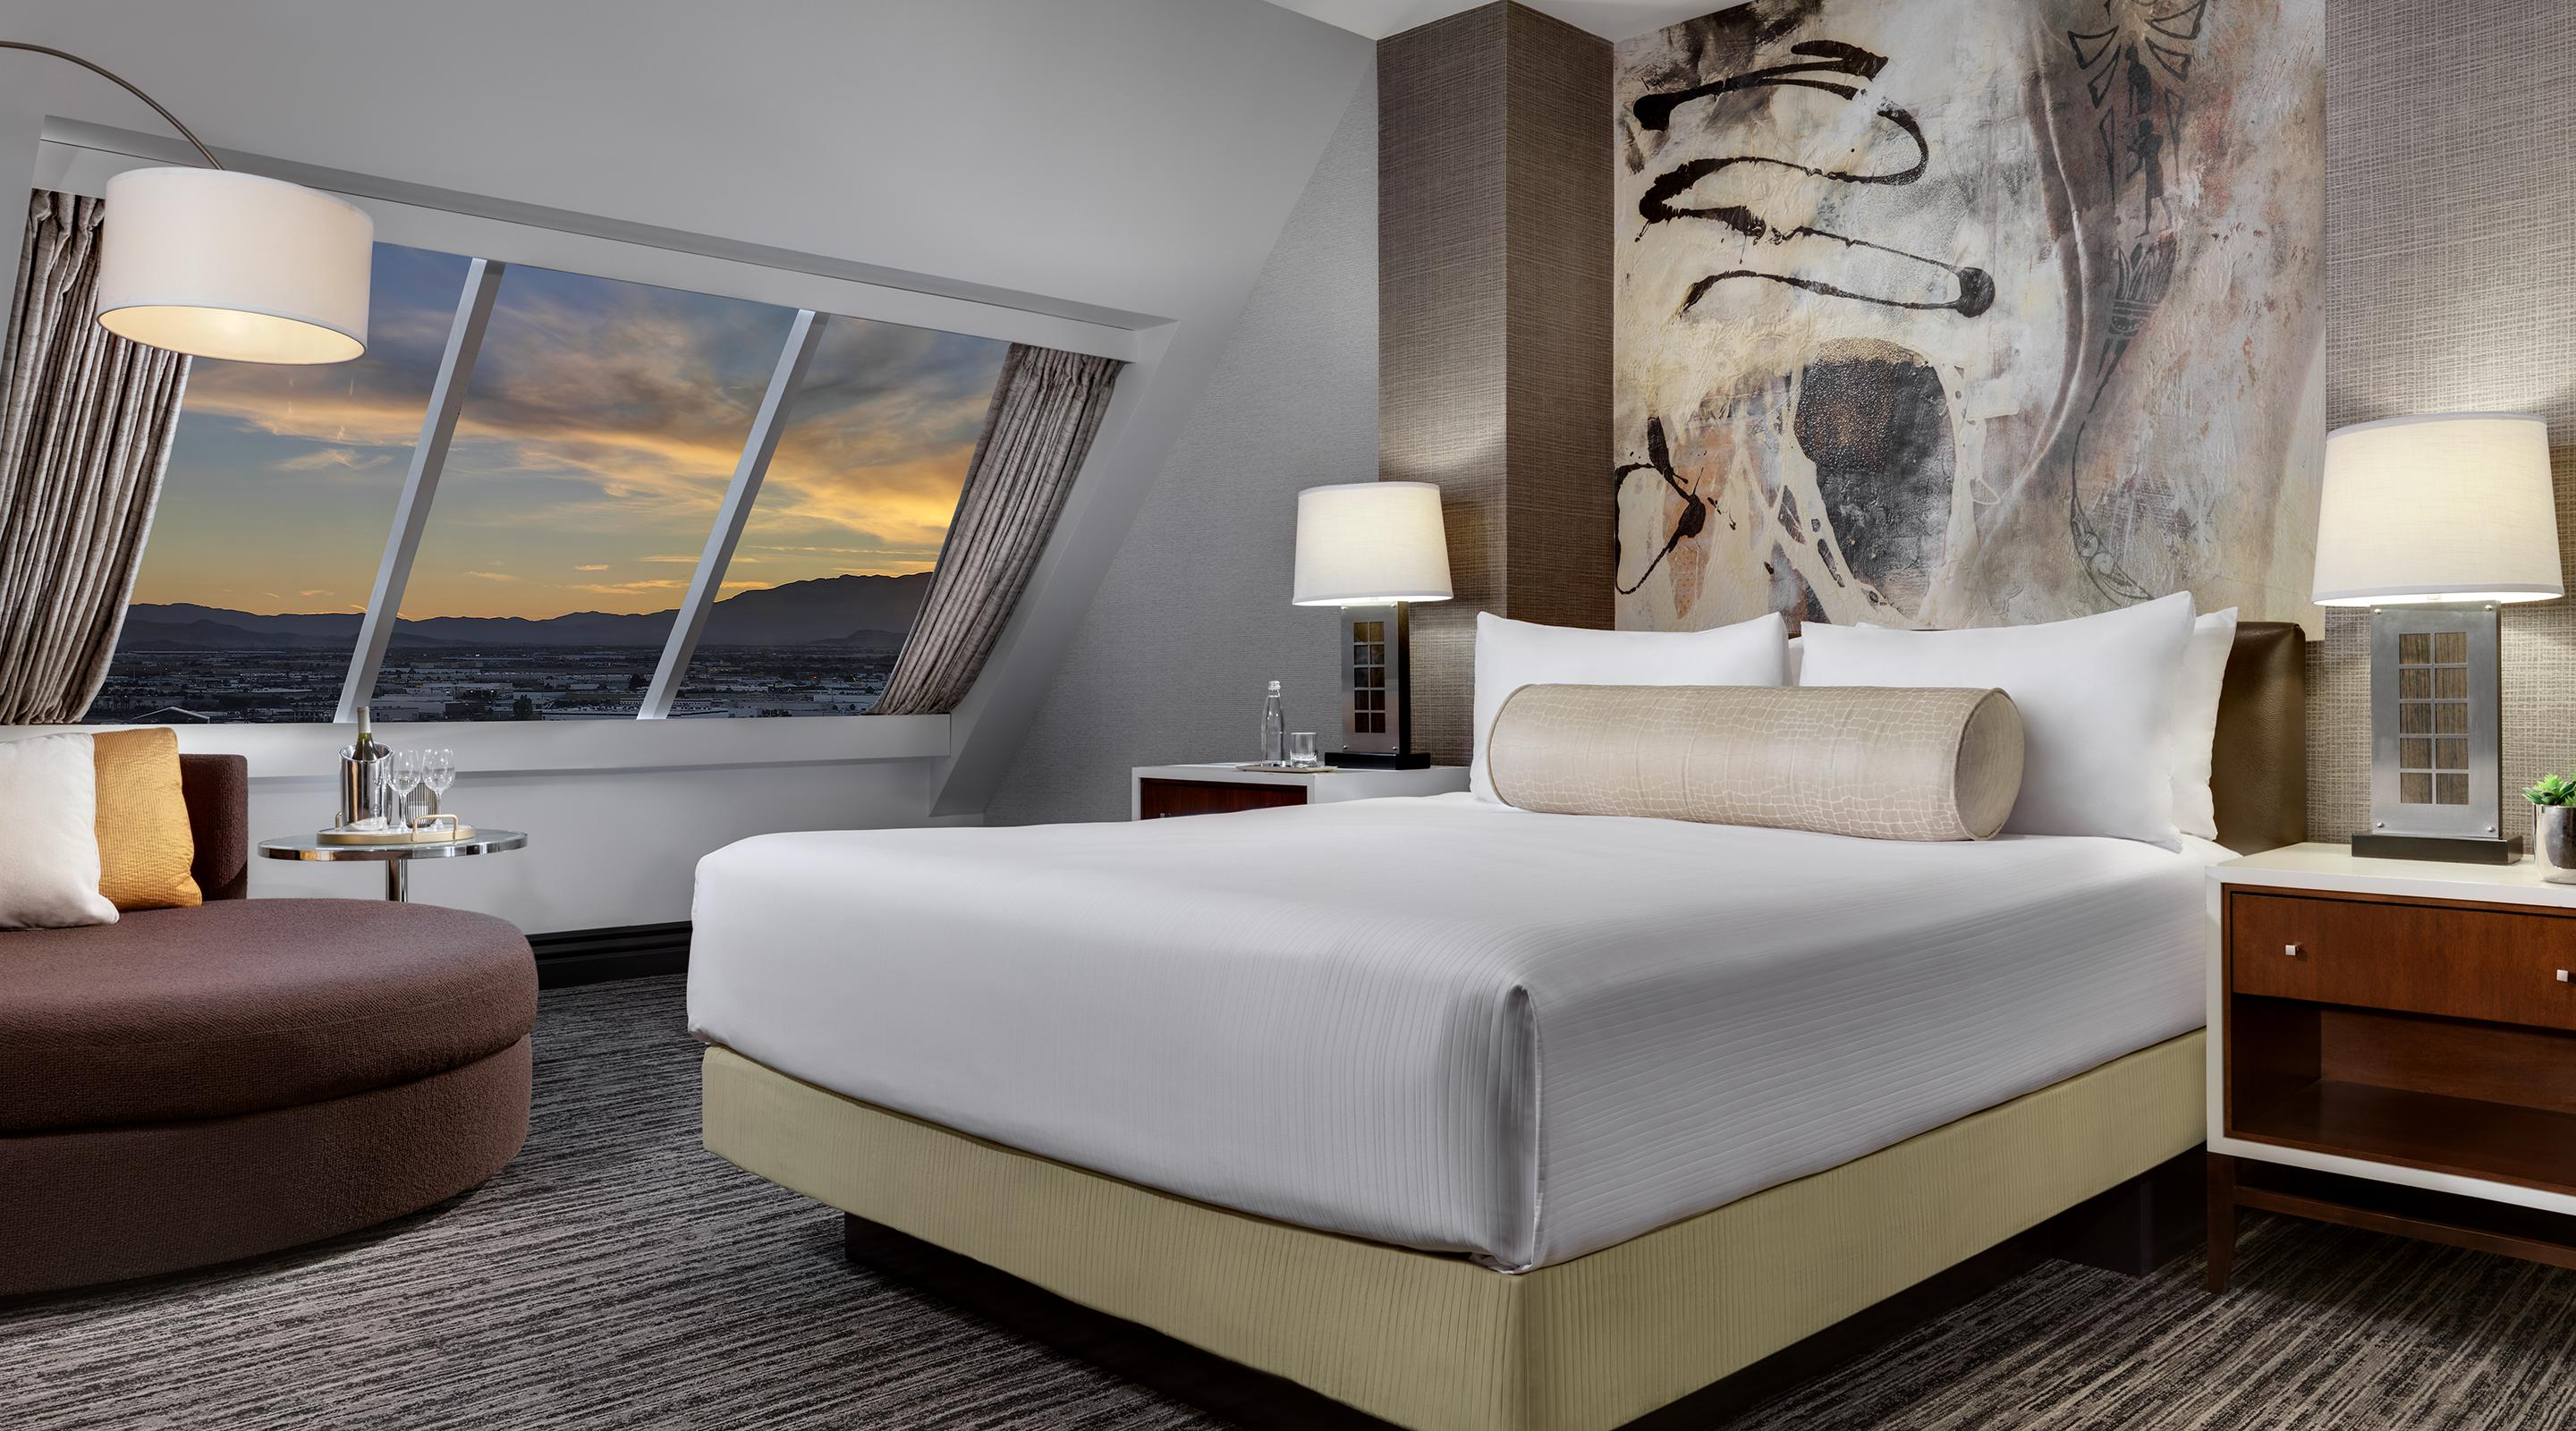 King sized bed in the Pyramid Premier Suite Bedroom.